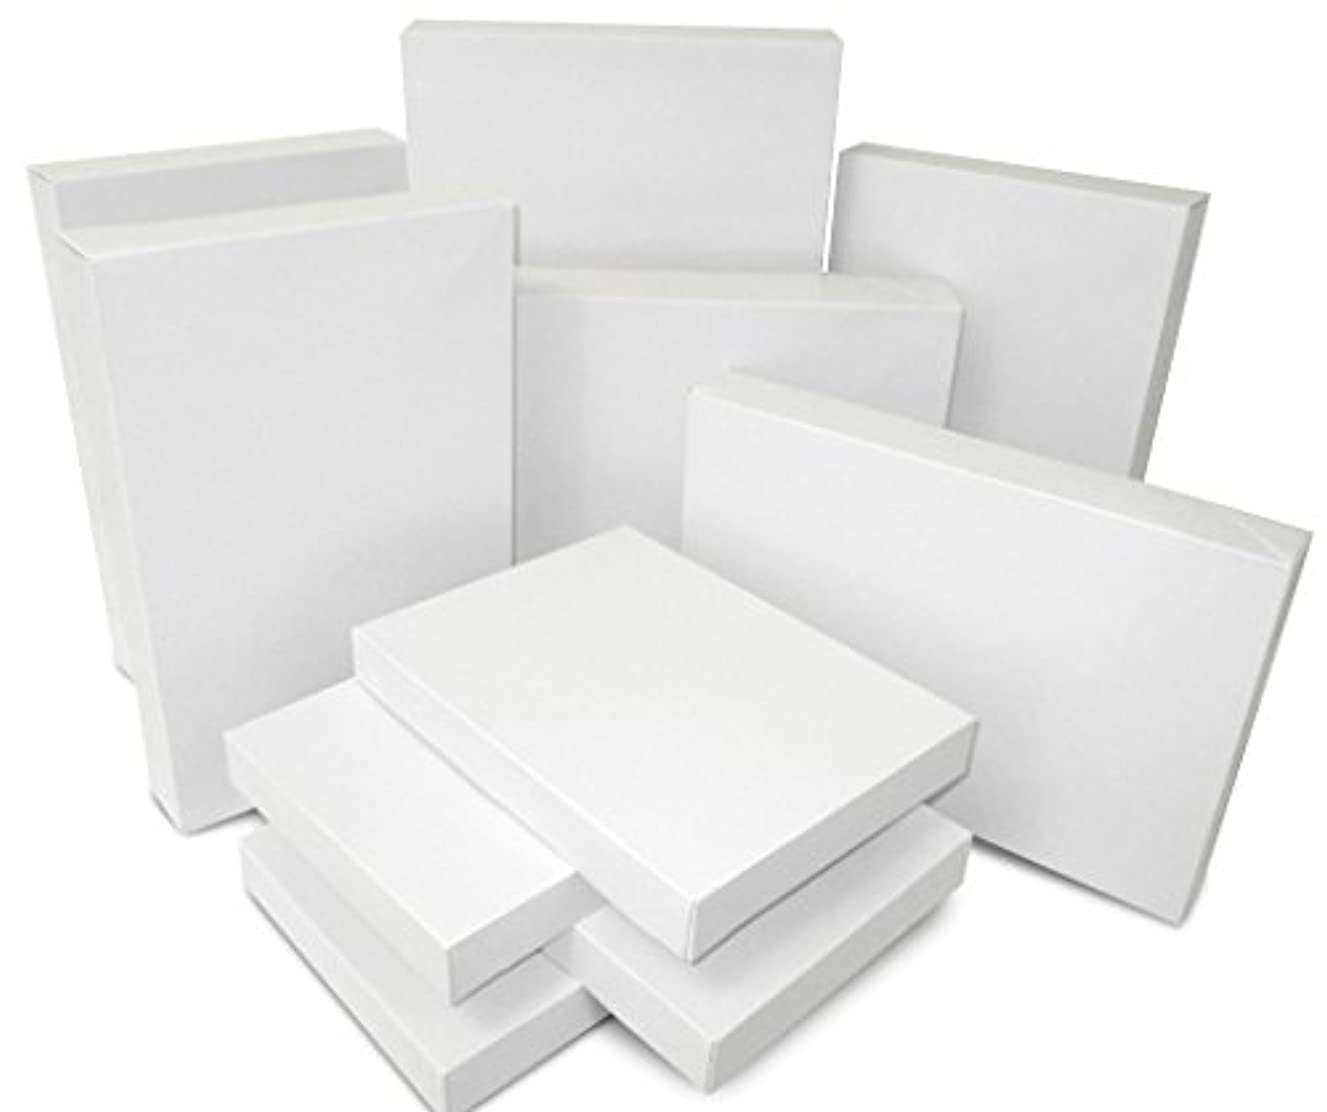 White Assorted Size Gift Wrap Packaging Present Boxes - Two Packs of 10 Boxes Each